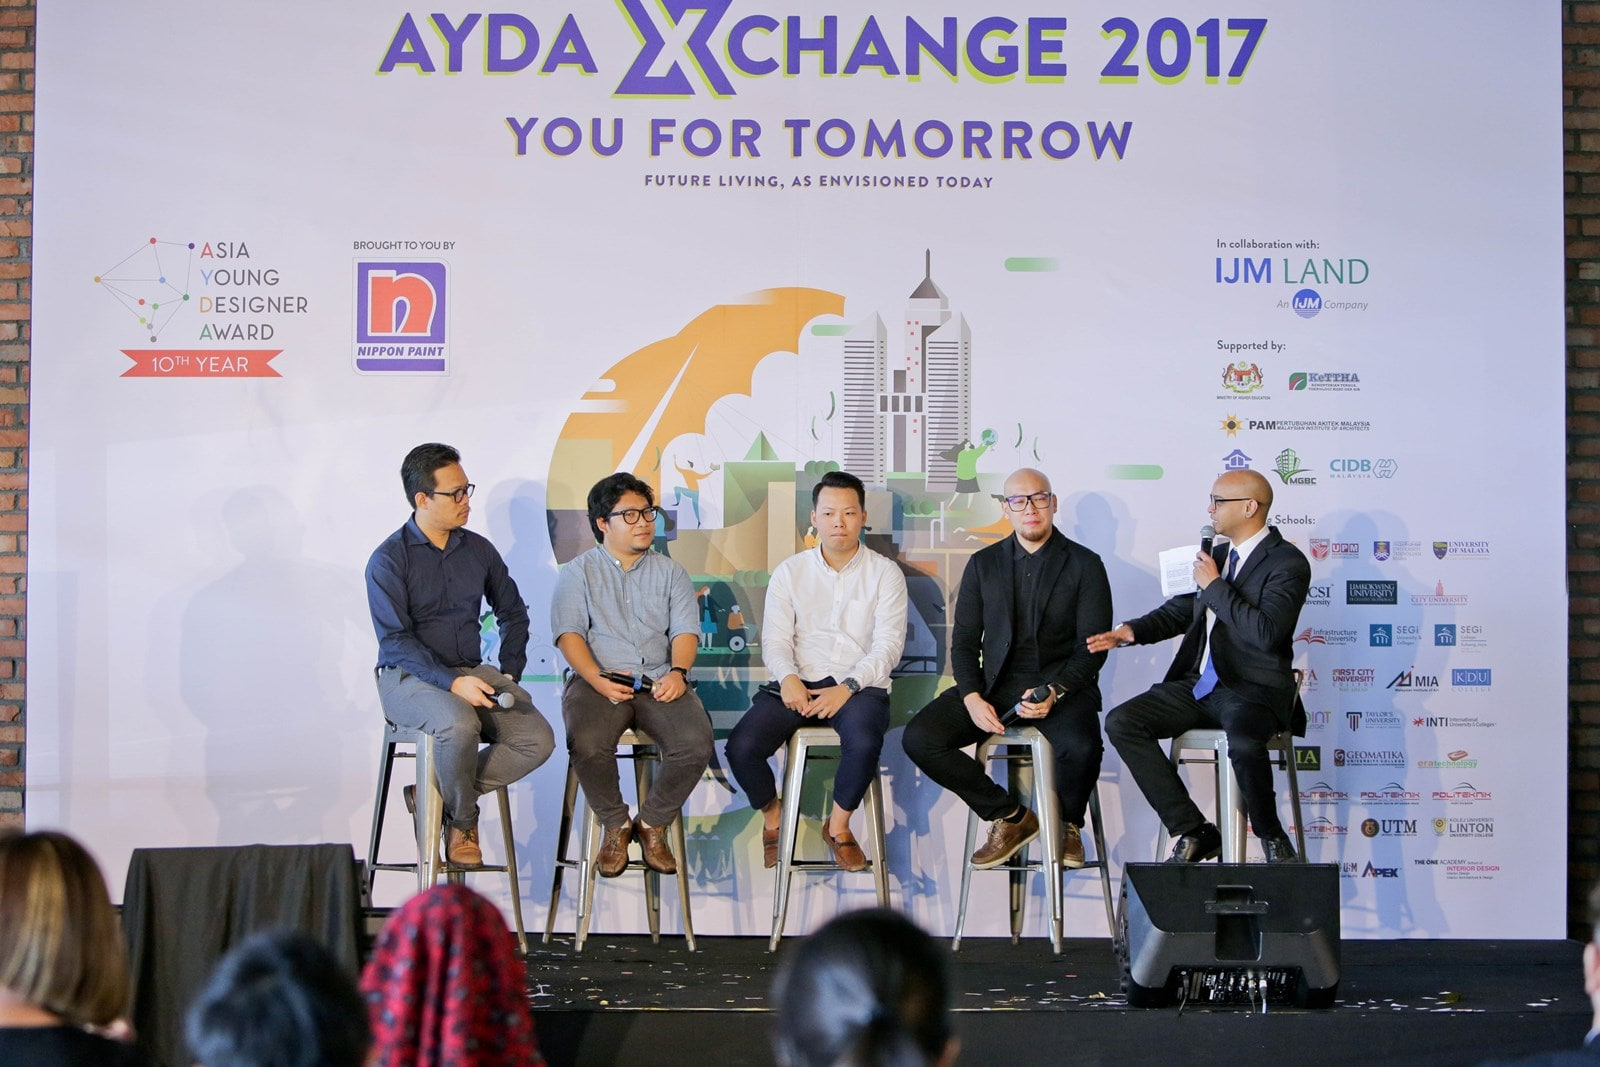 Panel sharing their experience and thoughts at the AYDA XChange session.